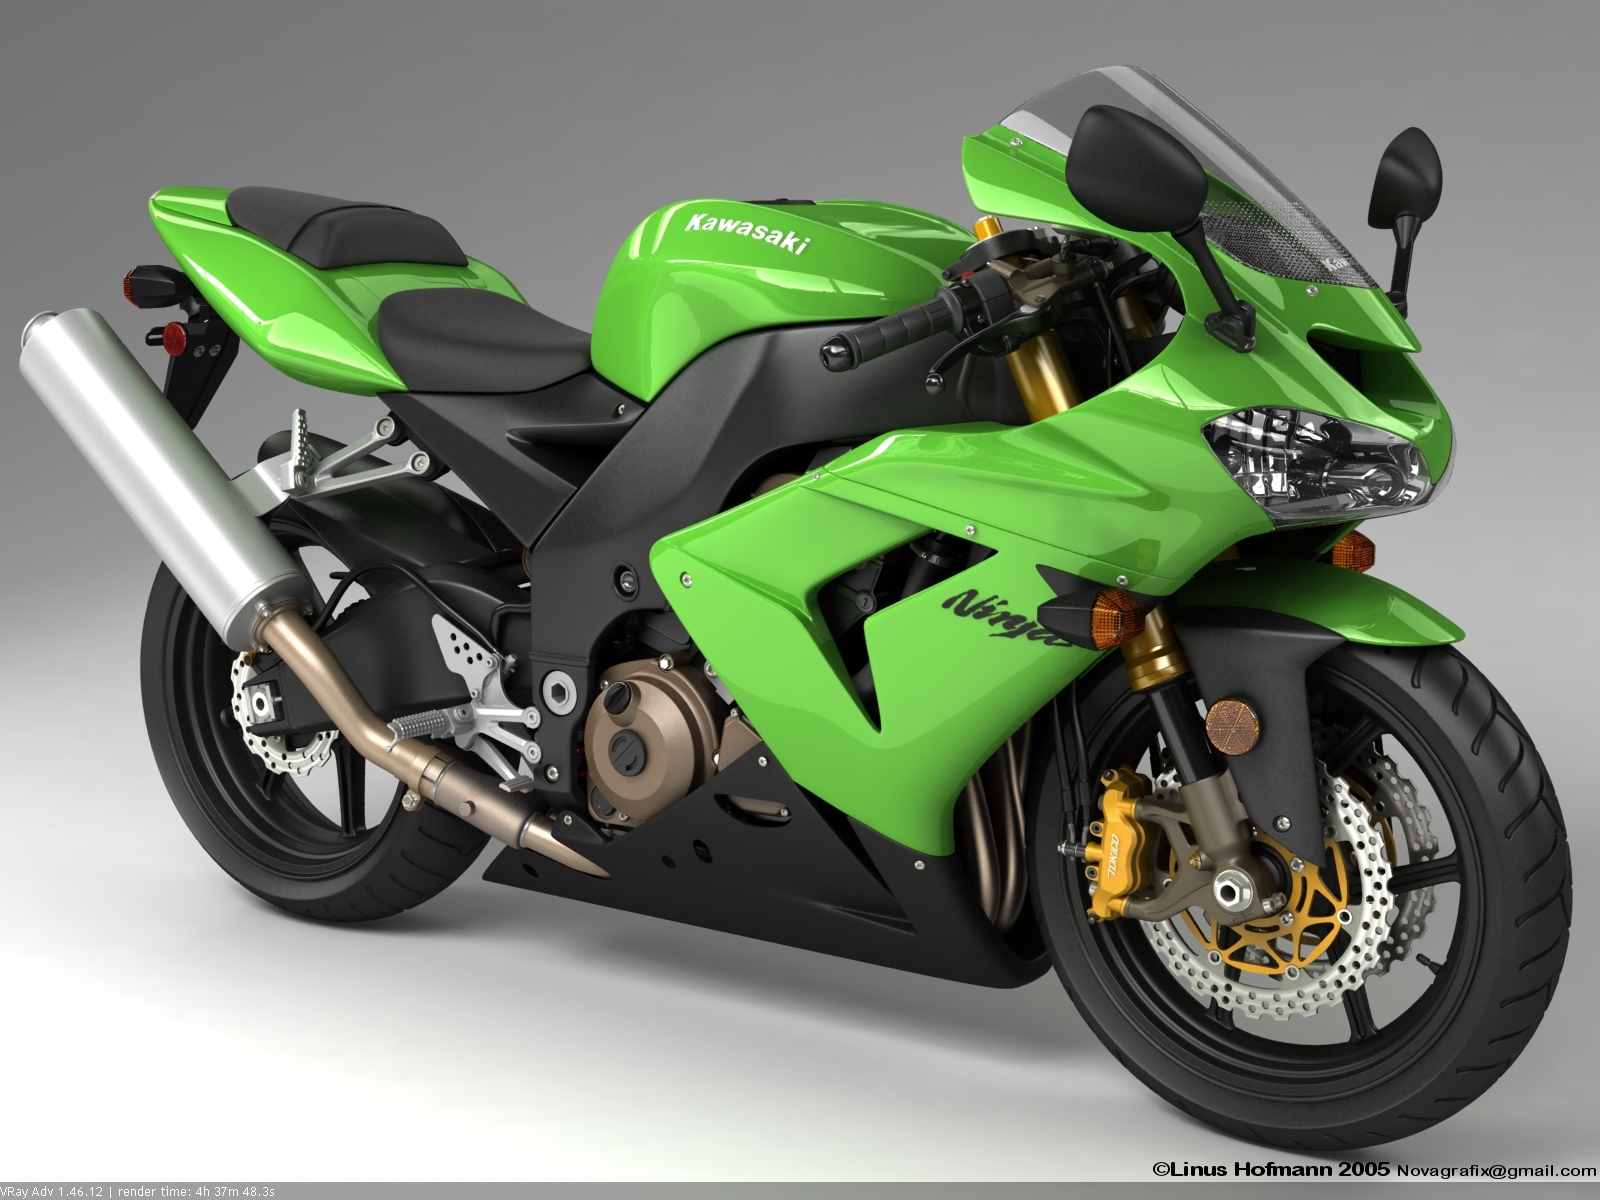 2005 Kawasaki Ninja Zx 10 R Pics Specs And Information